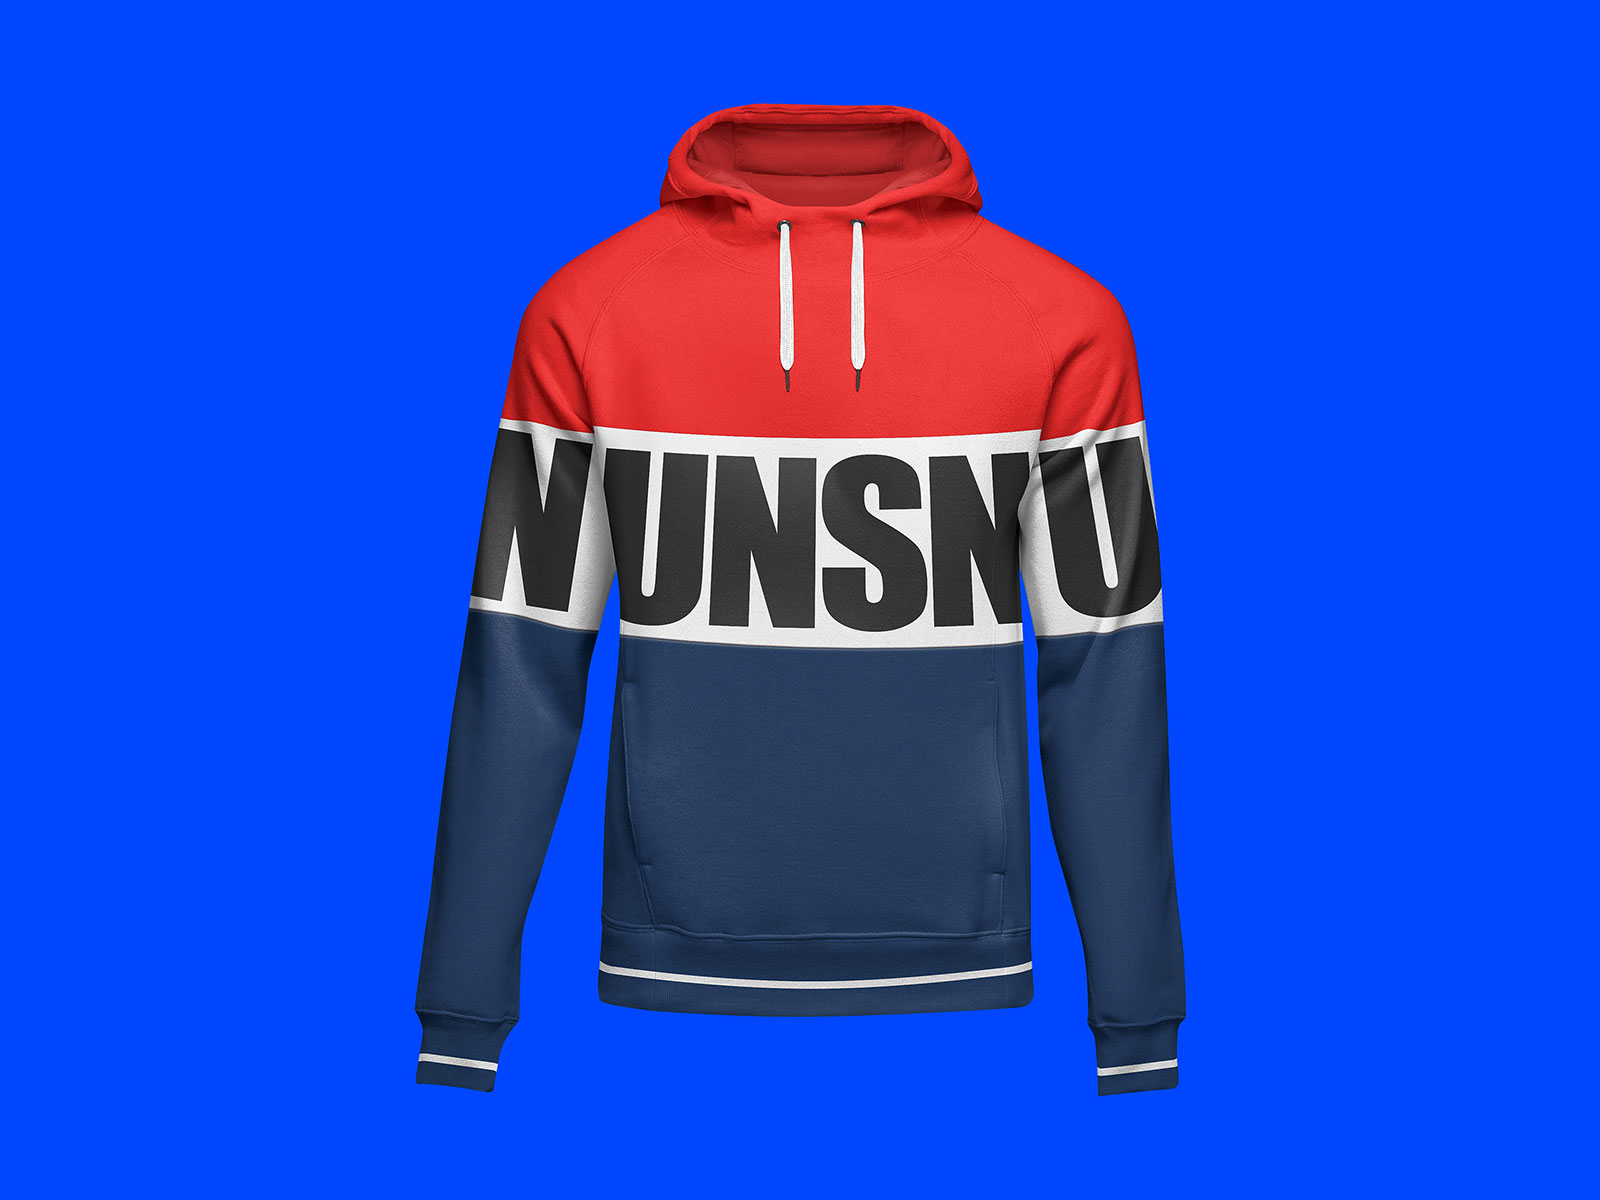 Free-High-Resolution-Hoodie-Sweatshirt-Mockup-PSD-2